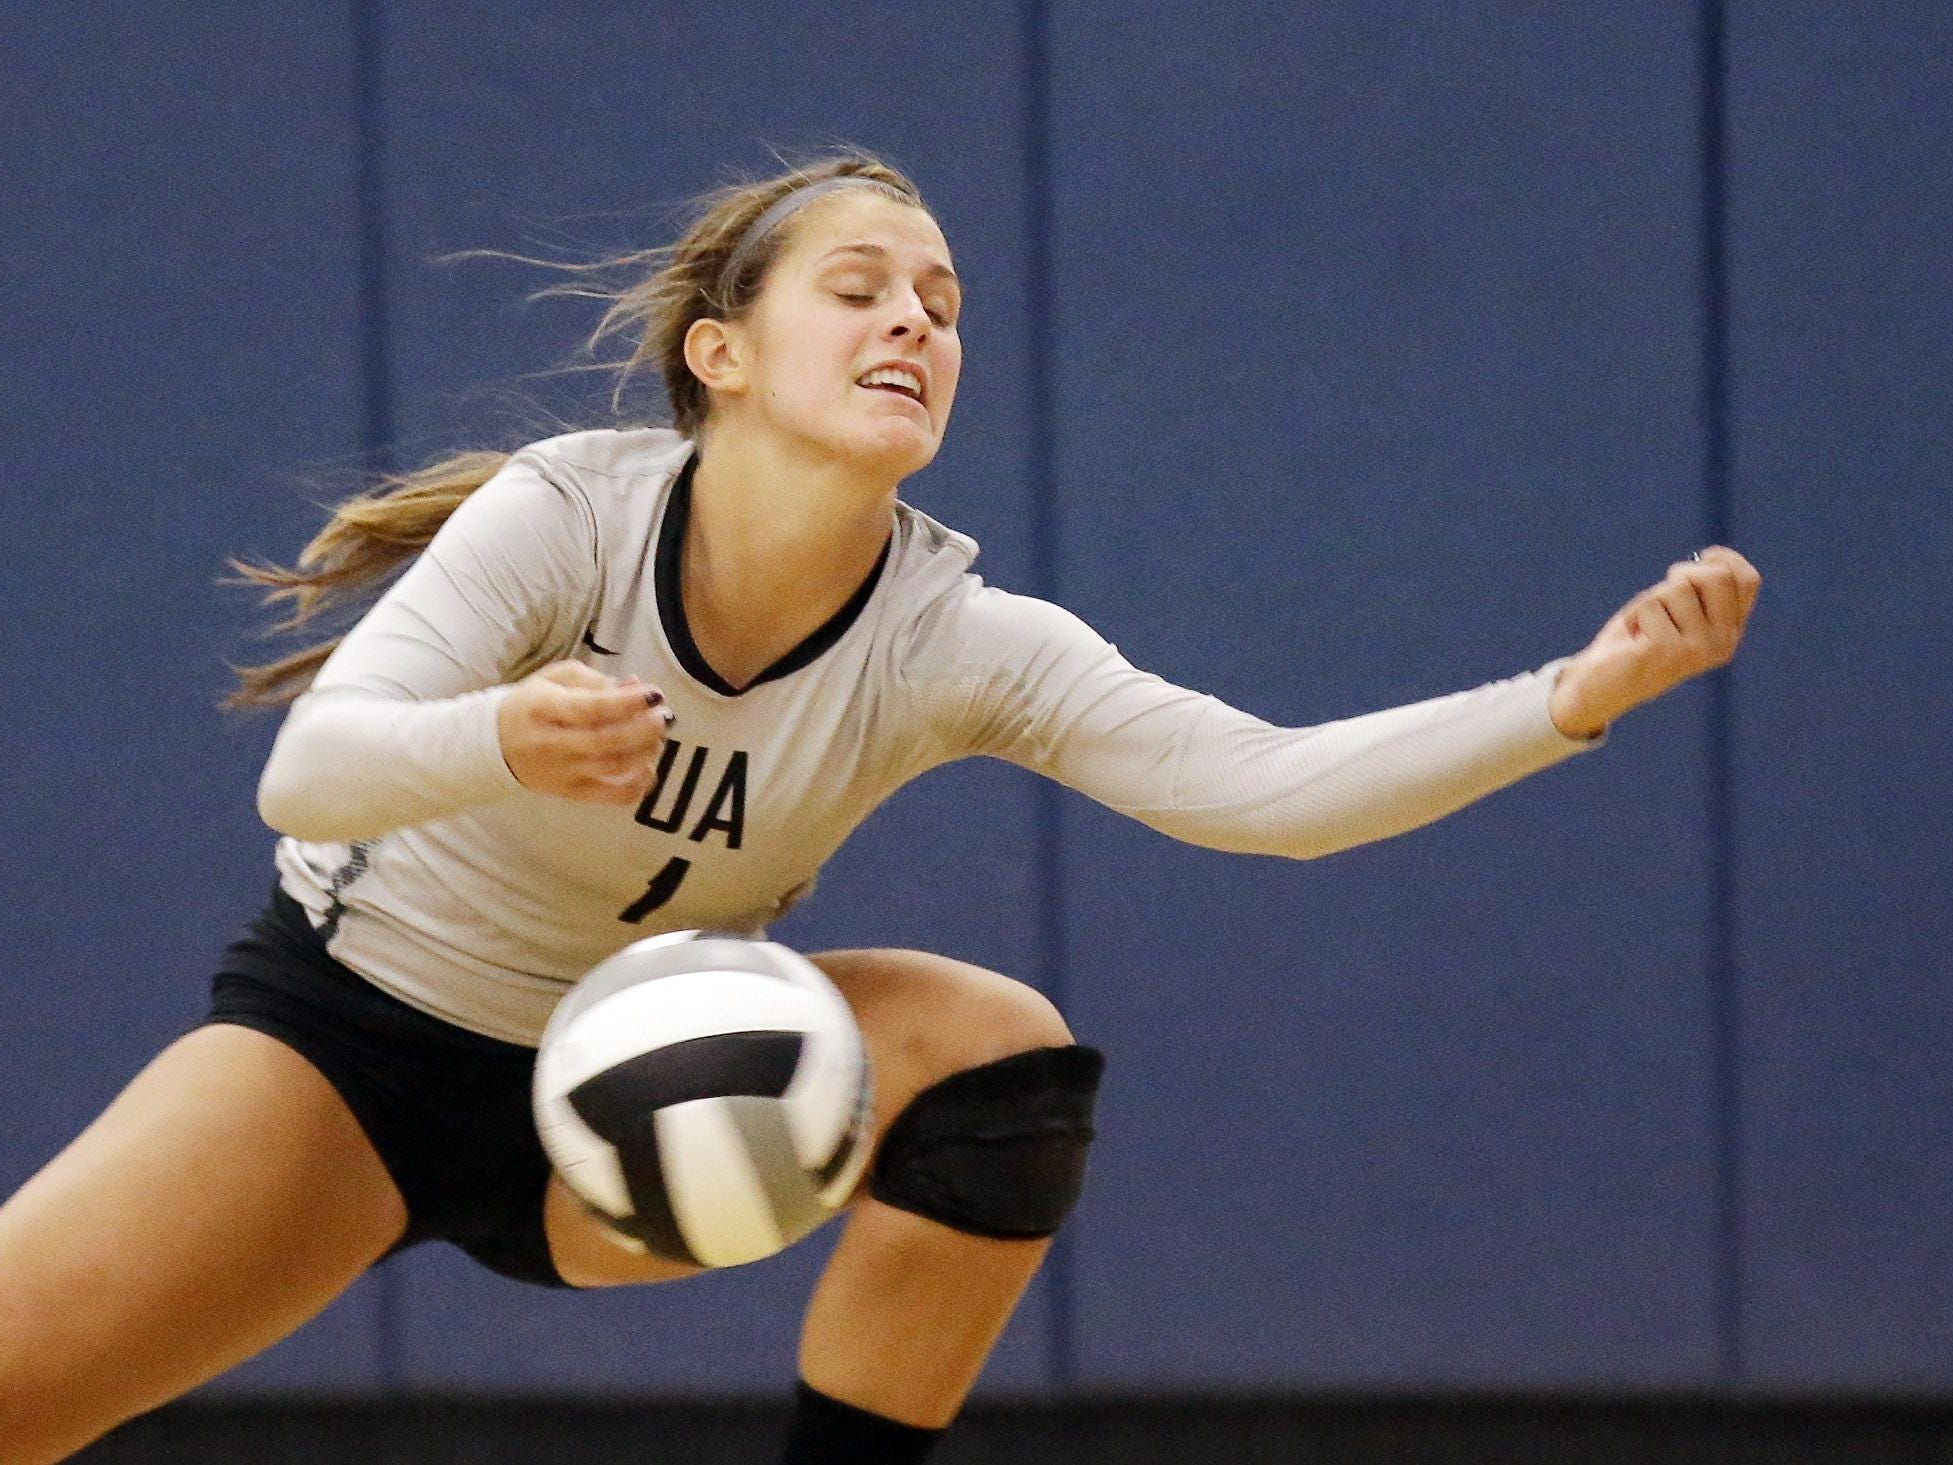 Ursuline's Avery Naylor attempts to save the ball during a game against Mount Notre Dame last season.